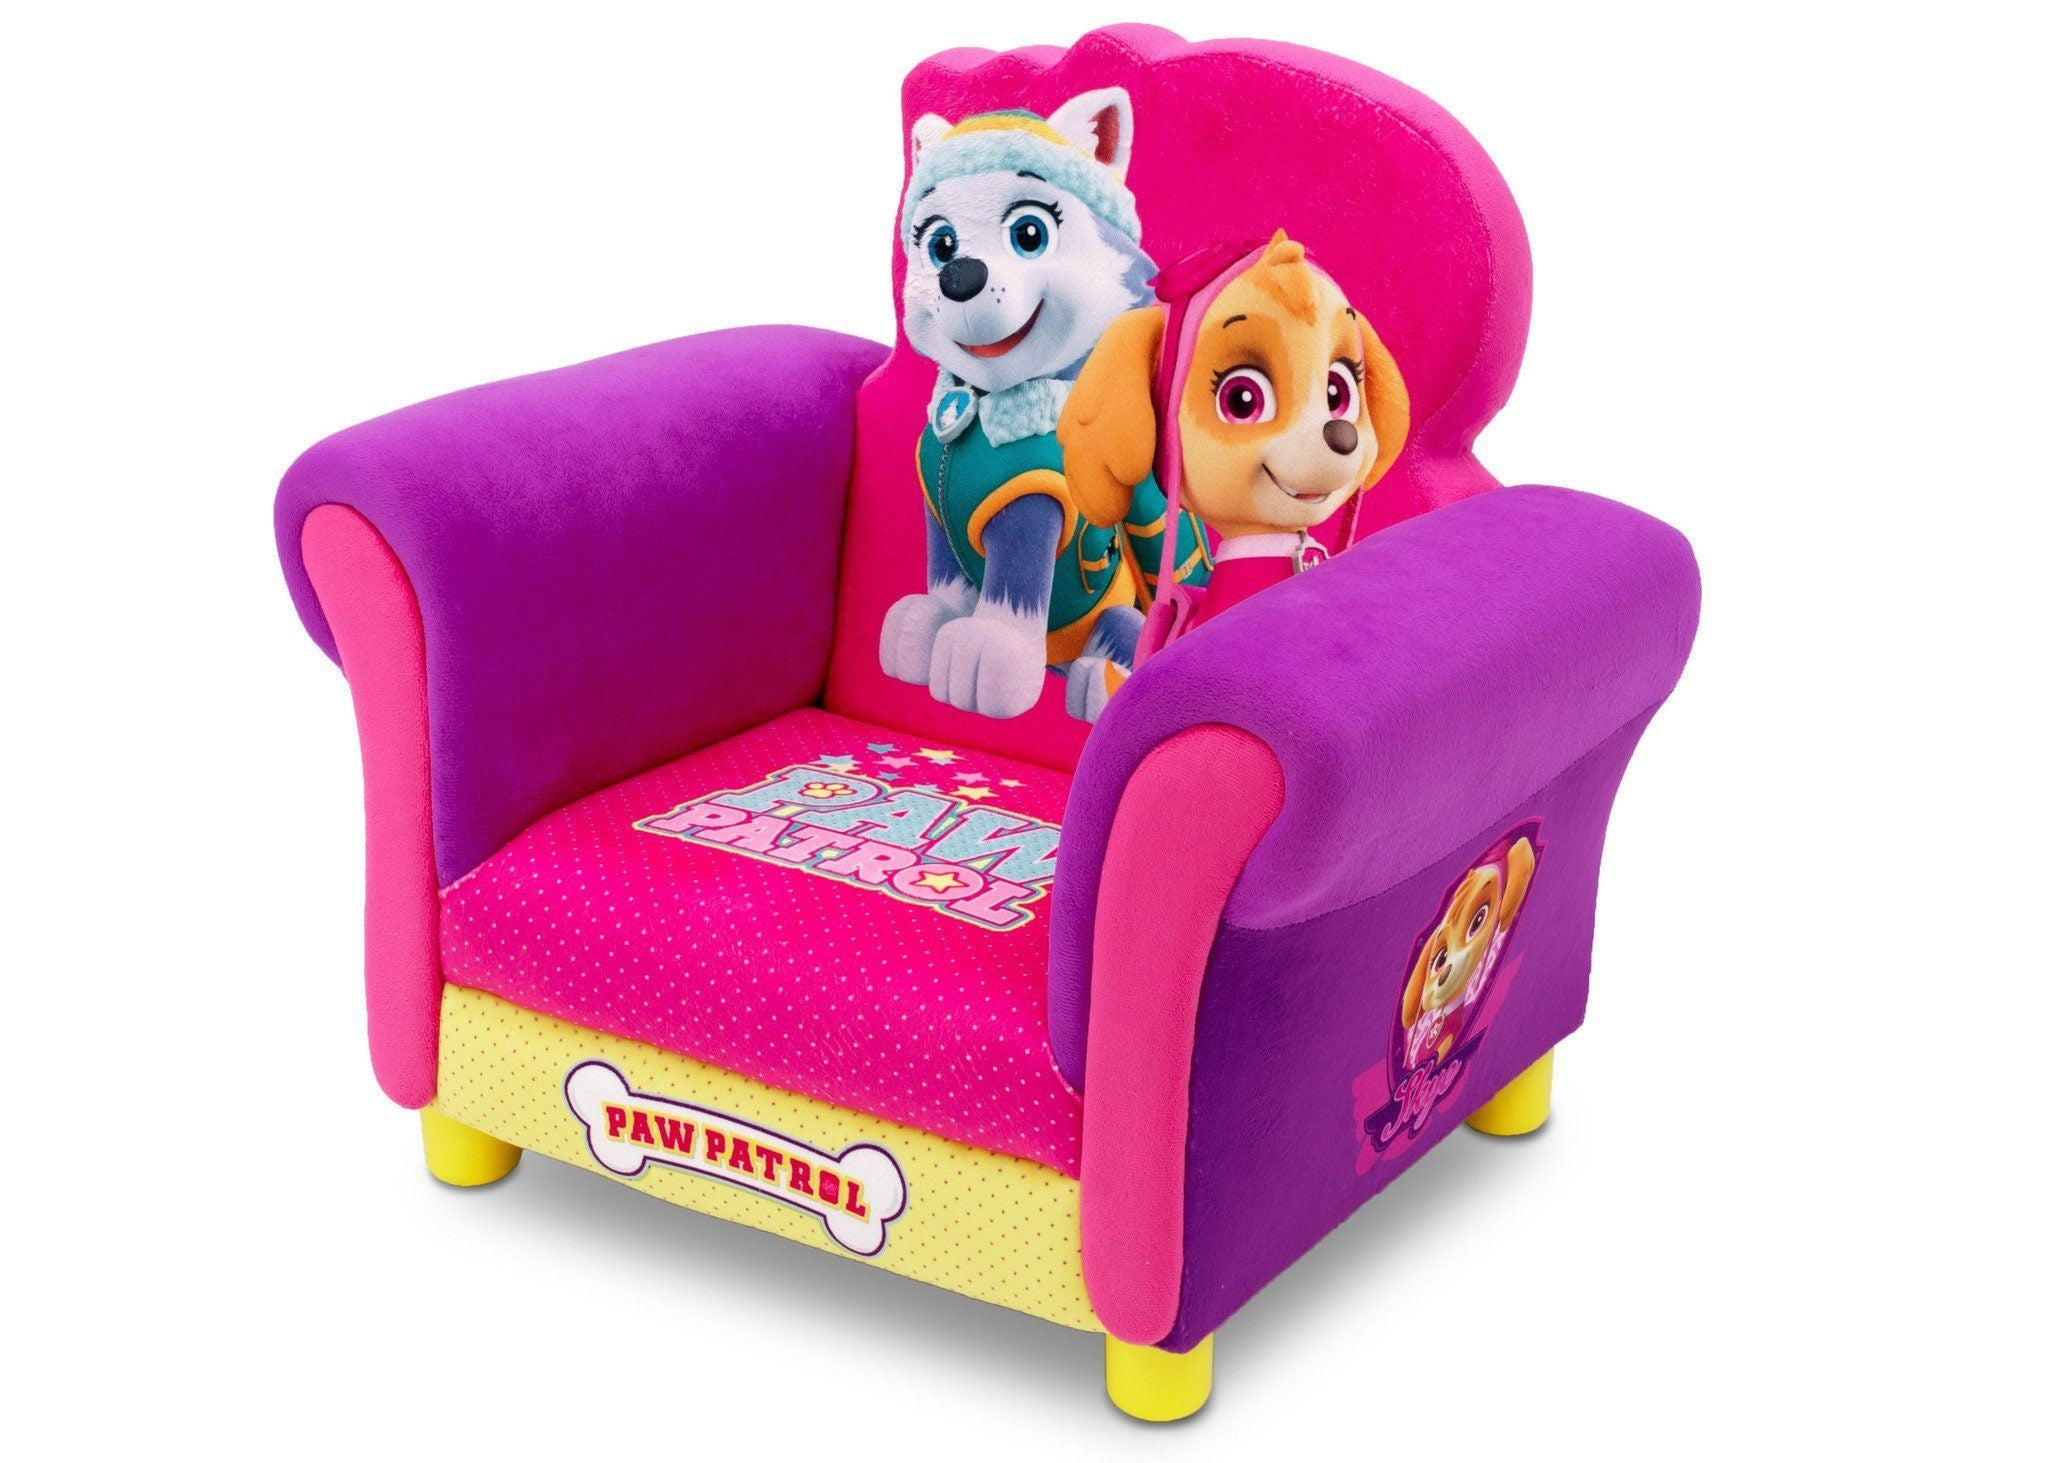 Paw Patrol Skye Amp Everest Deluxe Upholstered Chair